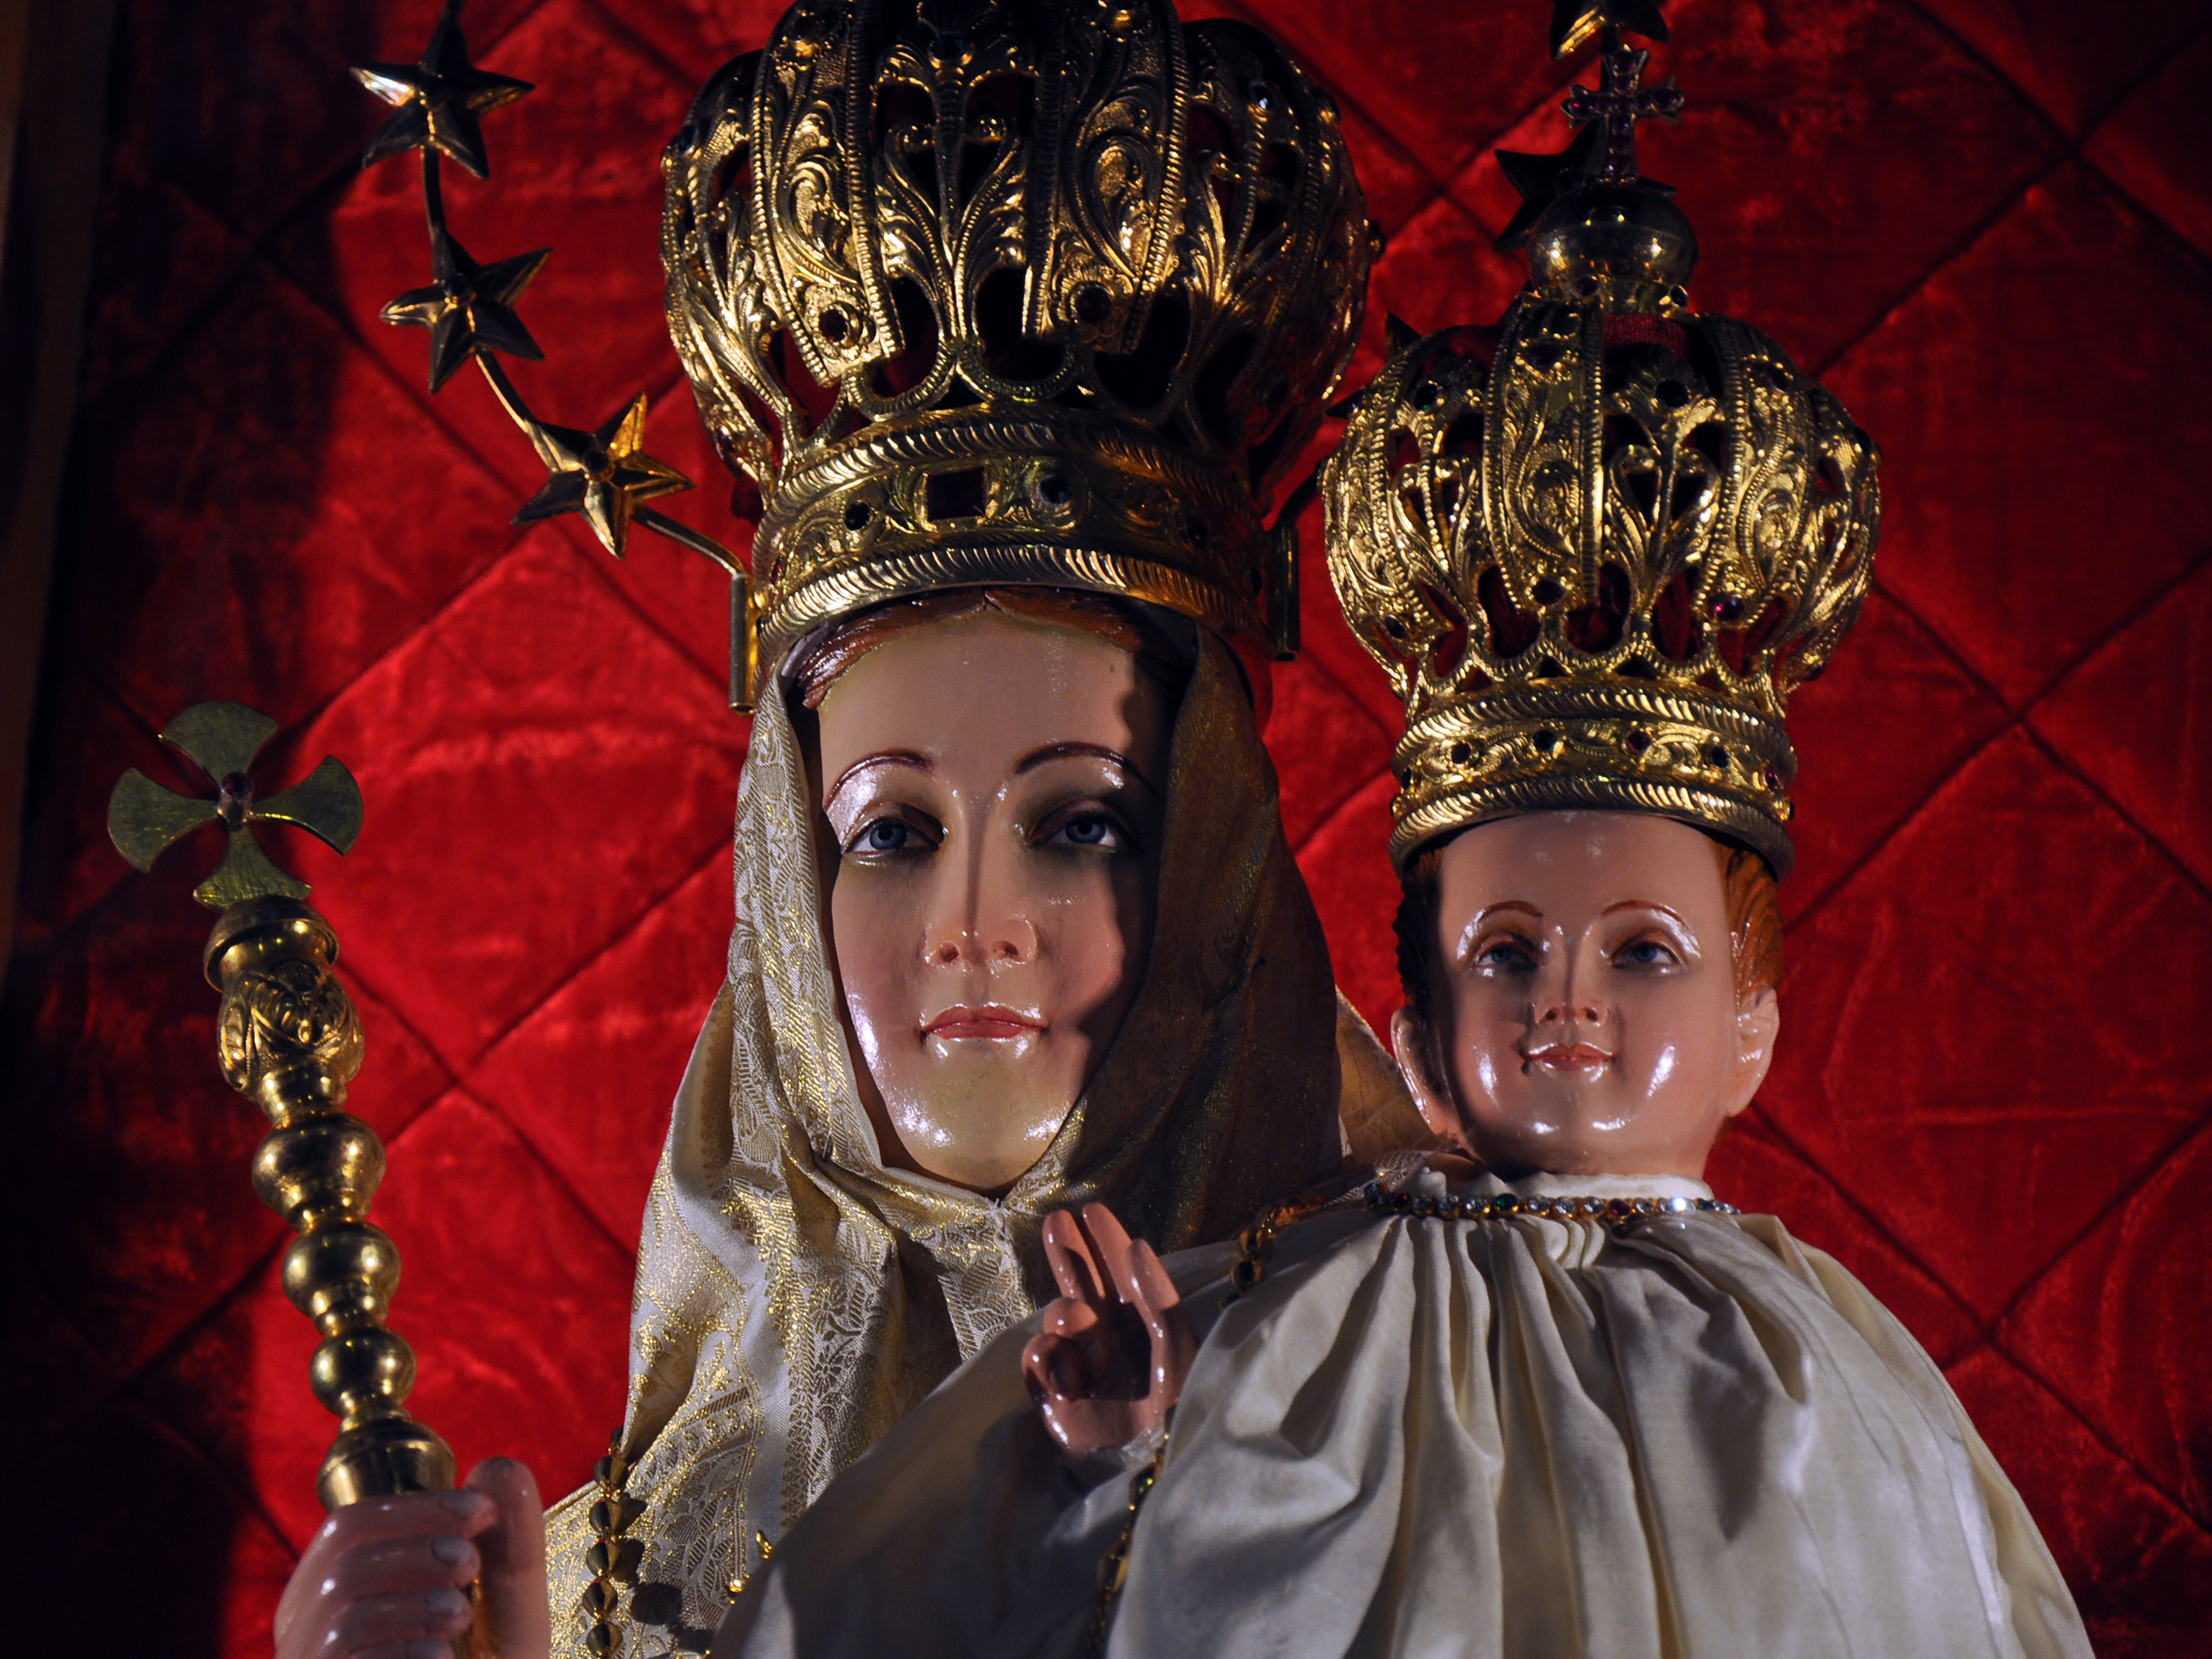 Our Lady of Good Health - Wikipedia